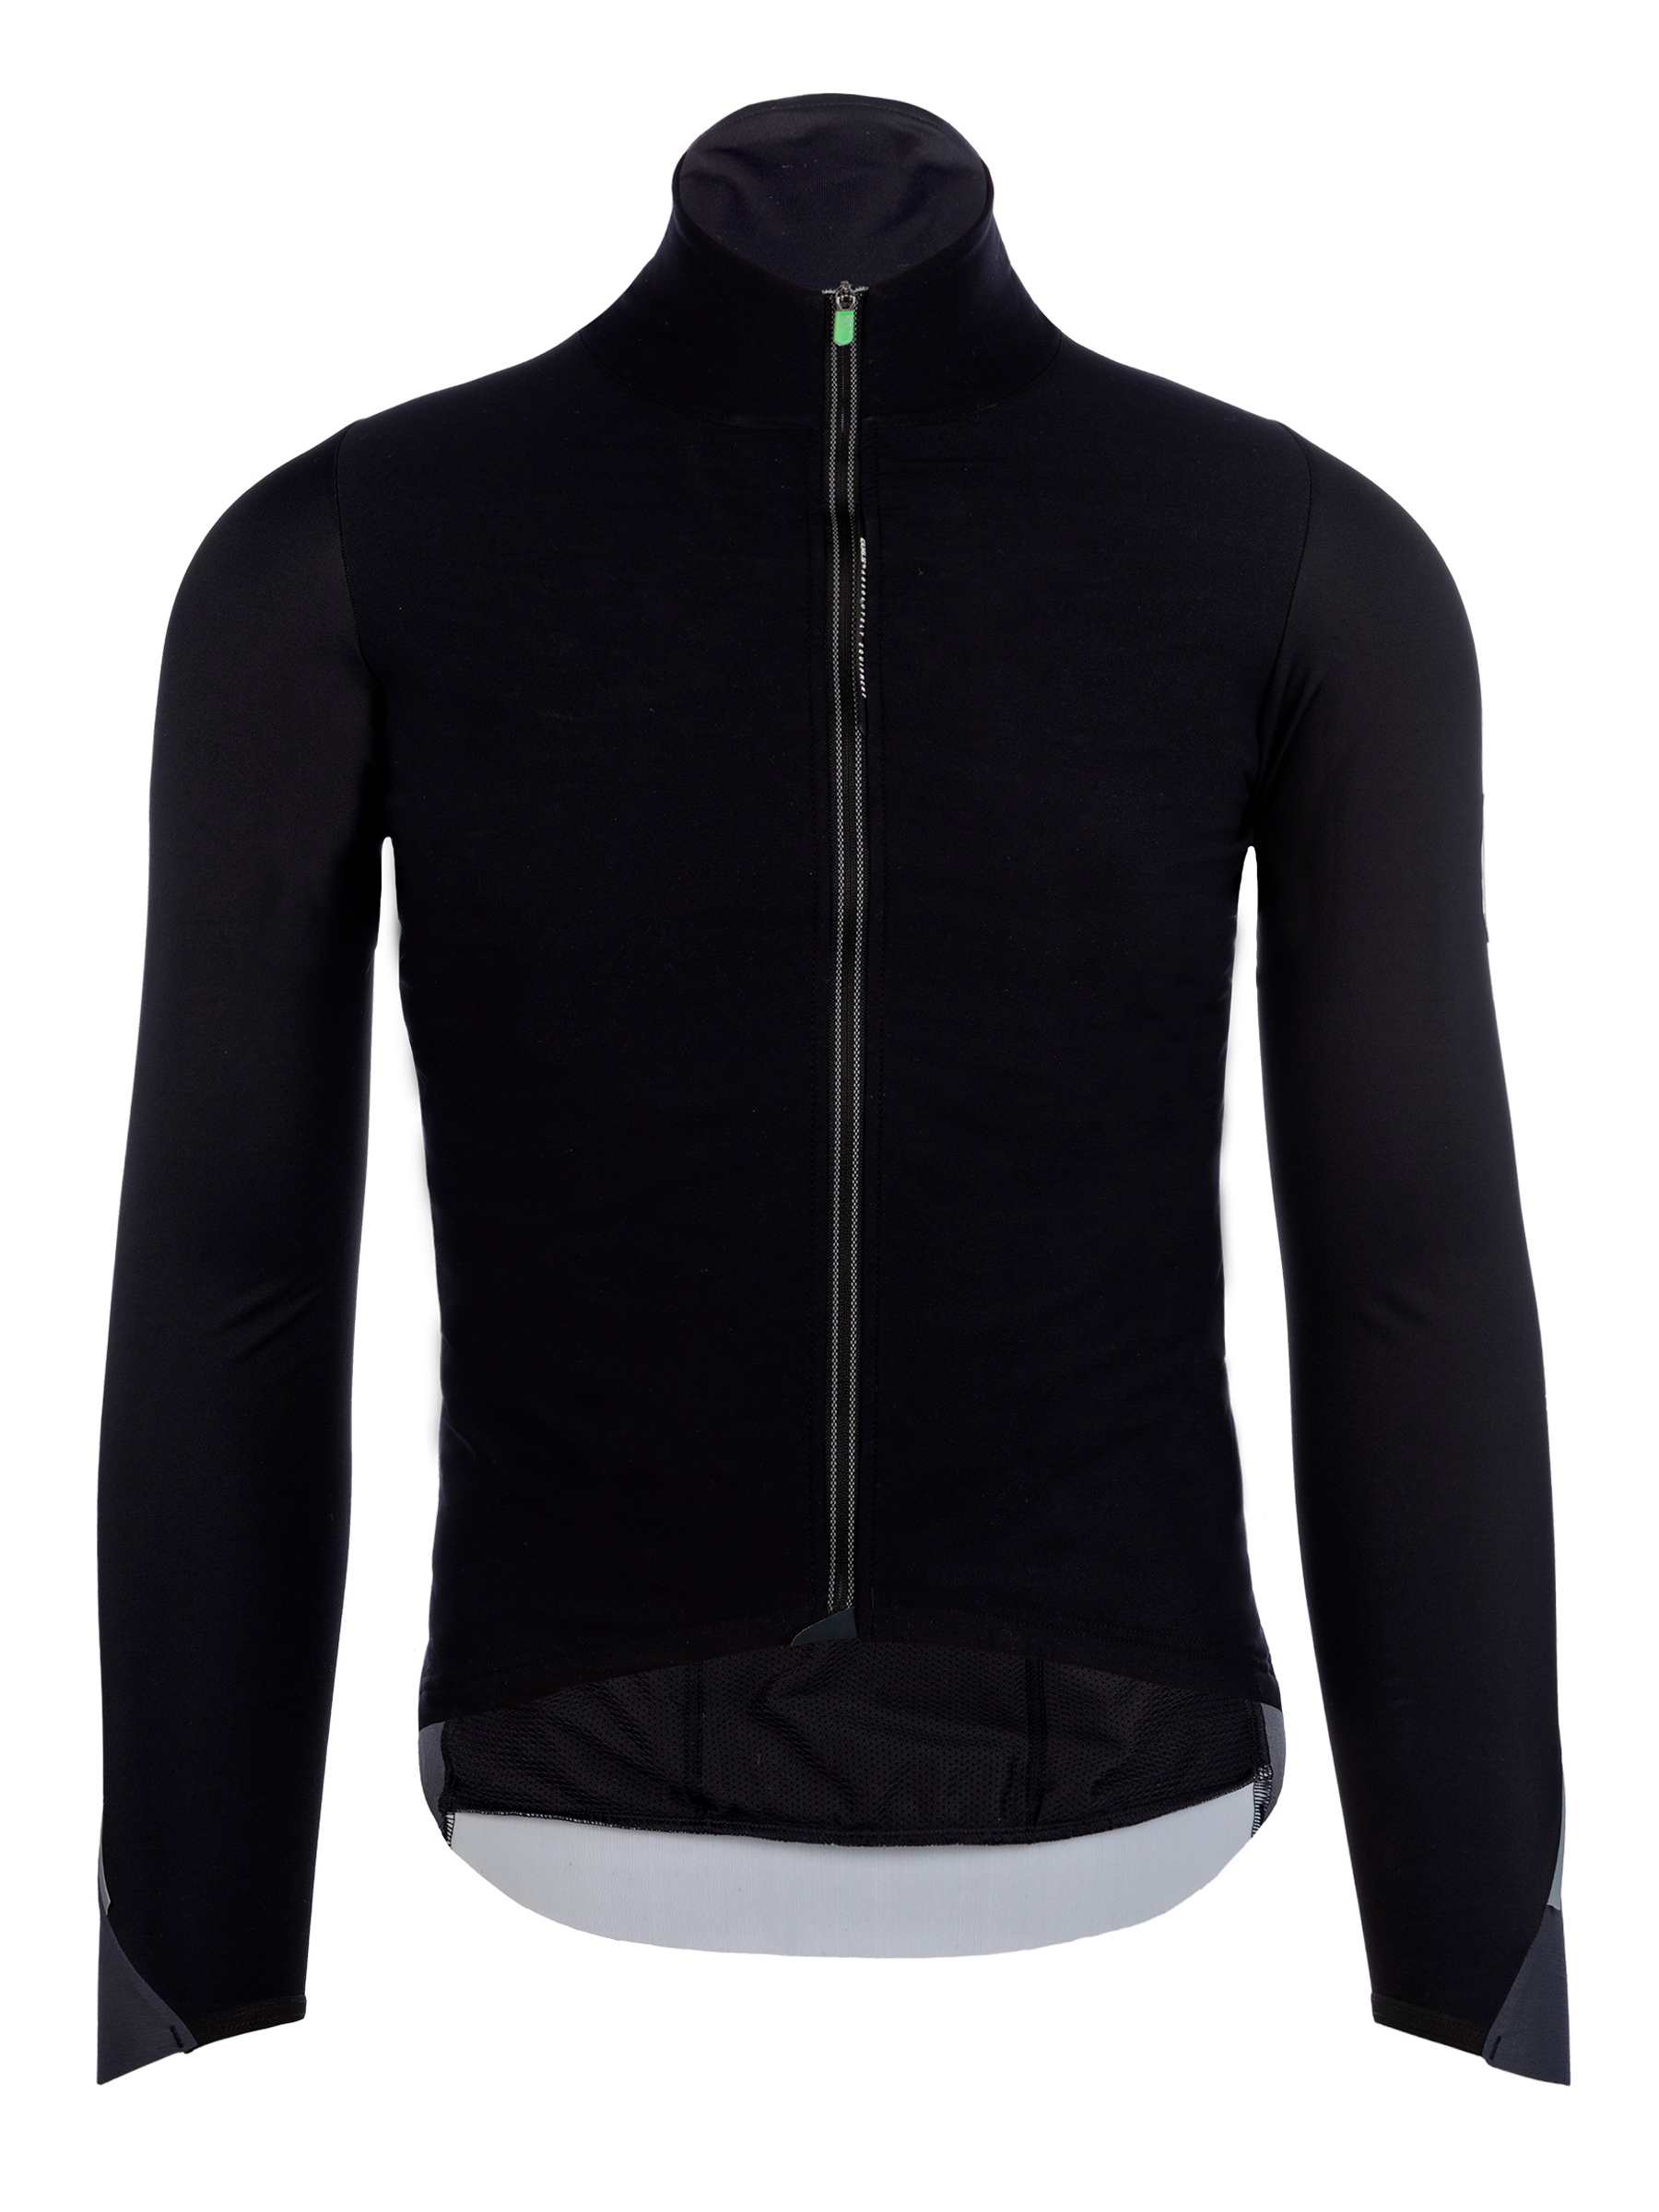 Mens cycling jacket Air Insulation Q36.5 - black